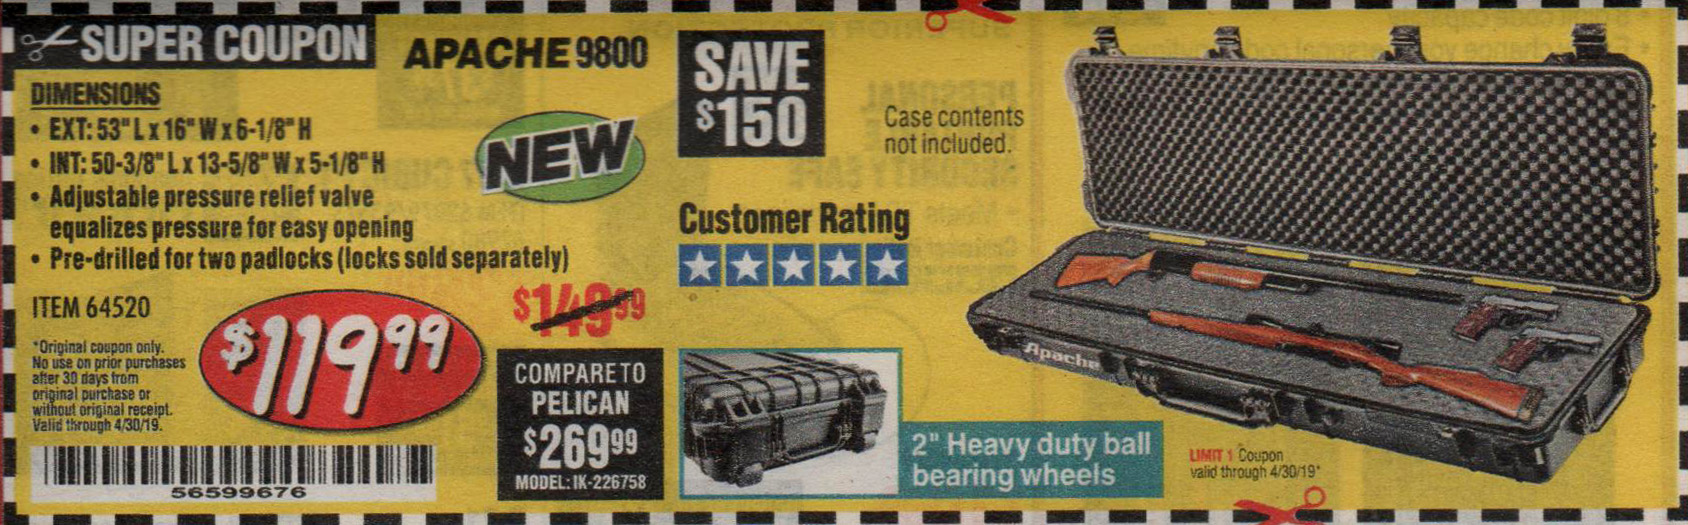 Harbor Freight Coupons, HF Coupons, 20% off - Apache 9800 Weatherproof 13-1/2